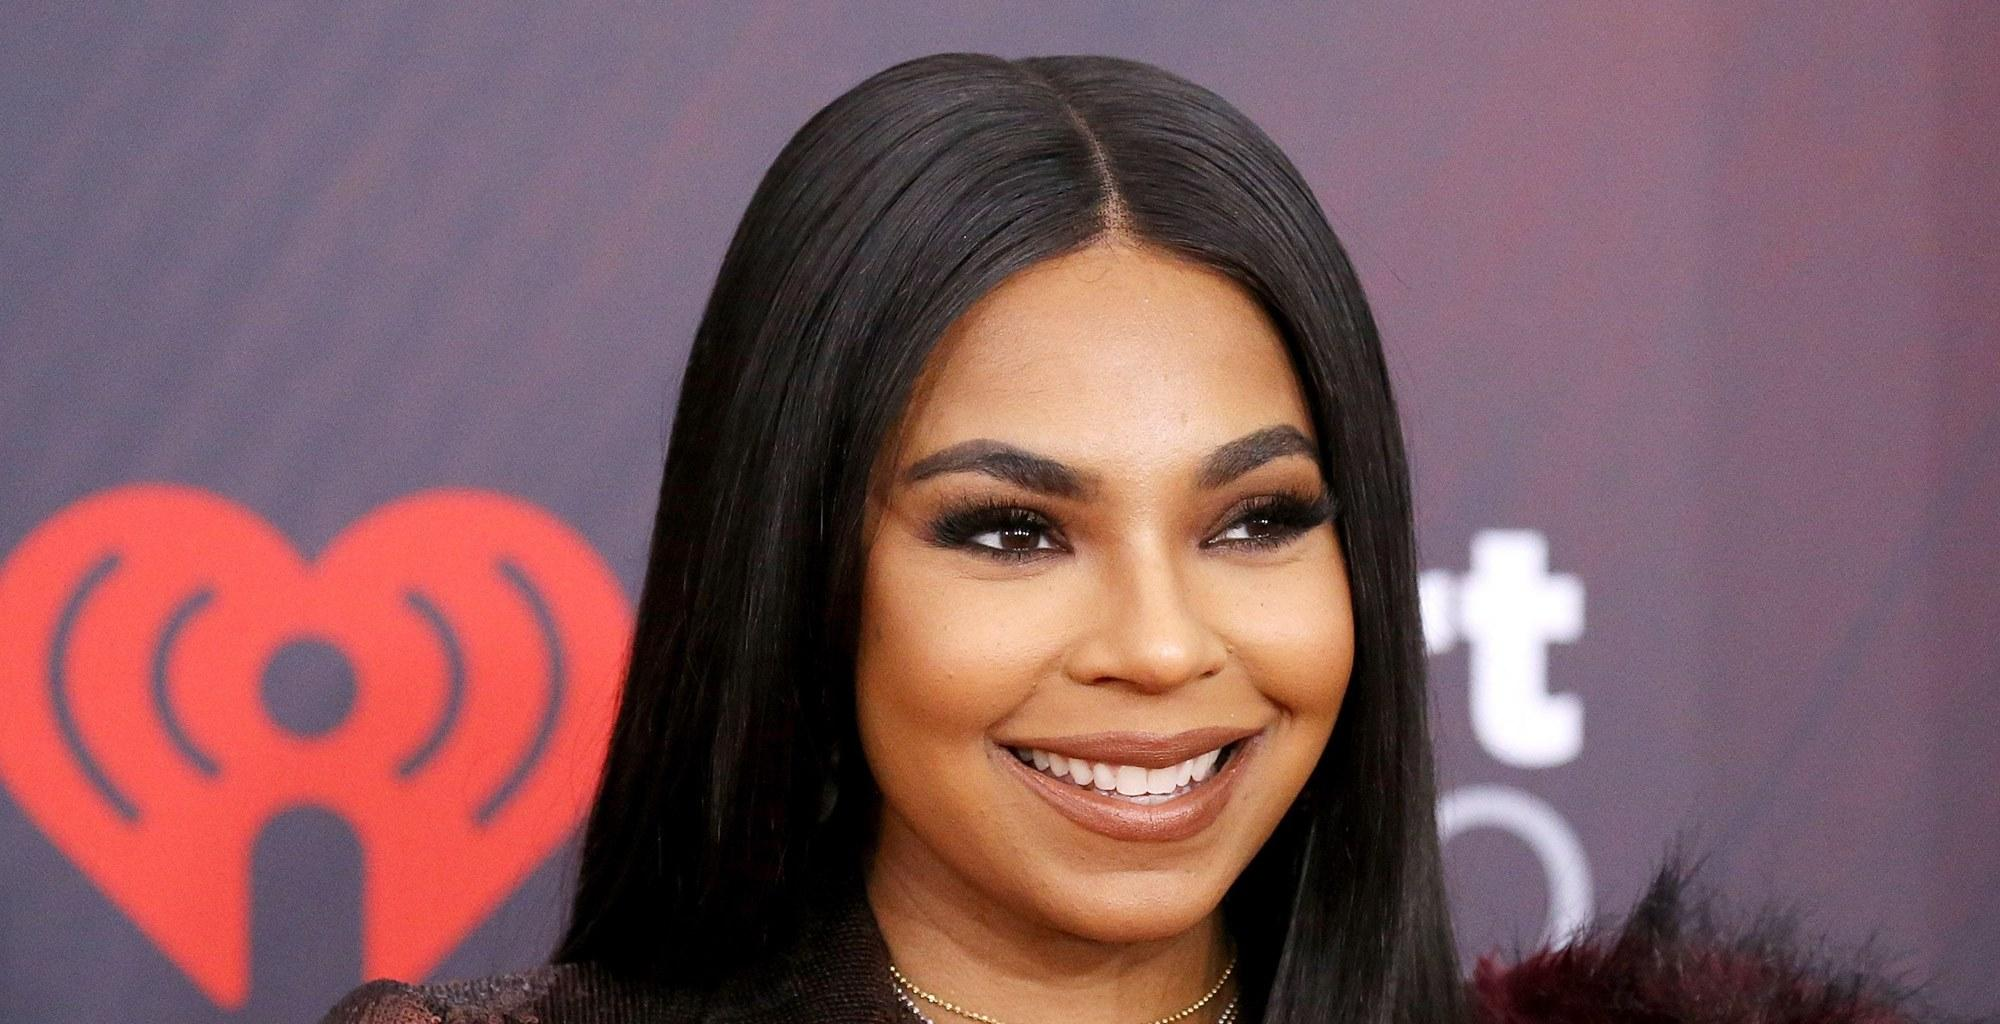 Ashanti Amazes Her Fans With New Ageless Photos Confirming That Staying At Home Does Wonders For Her Body And Face